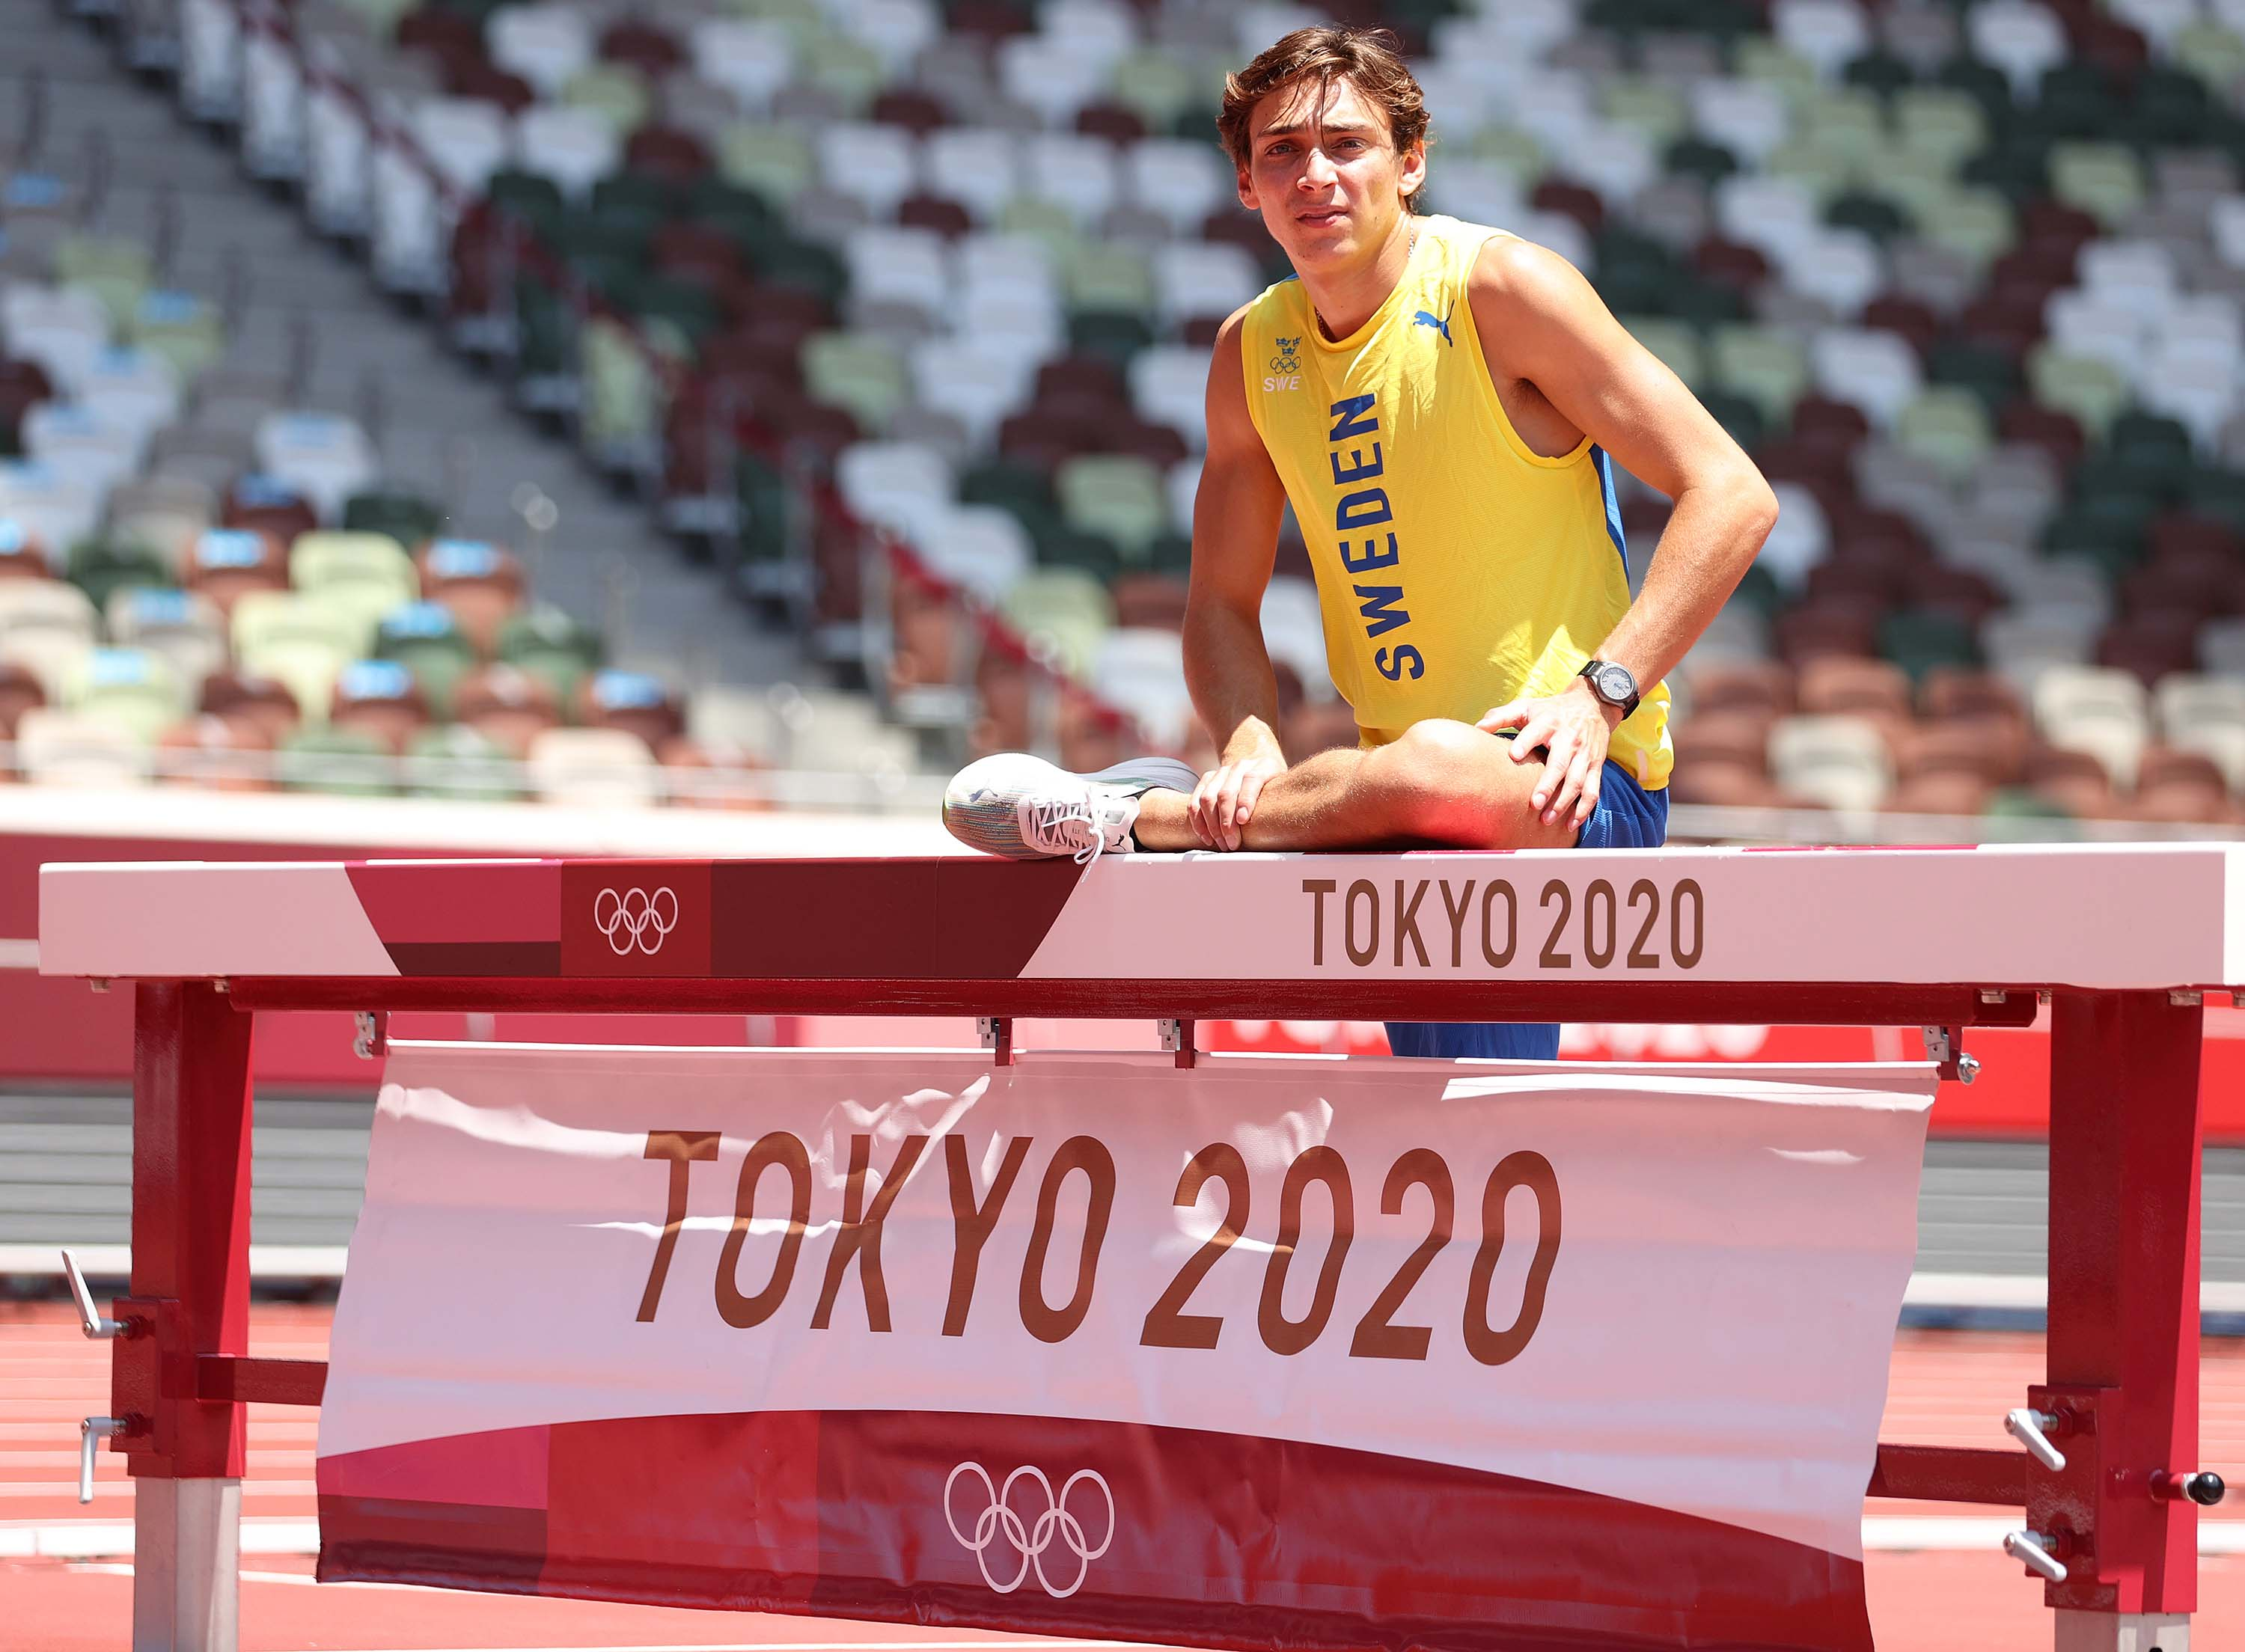 Pole vaulter Armand Duplantis of Sweden warms up on the track ahead of competition at the National Stadium ahead of competition at the Tokyo Olympic Games.